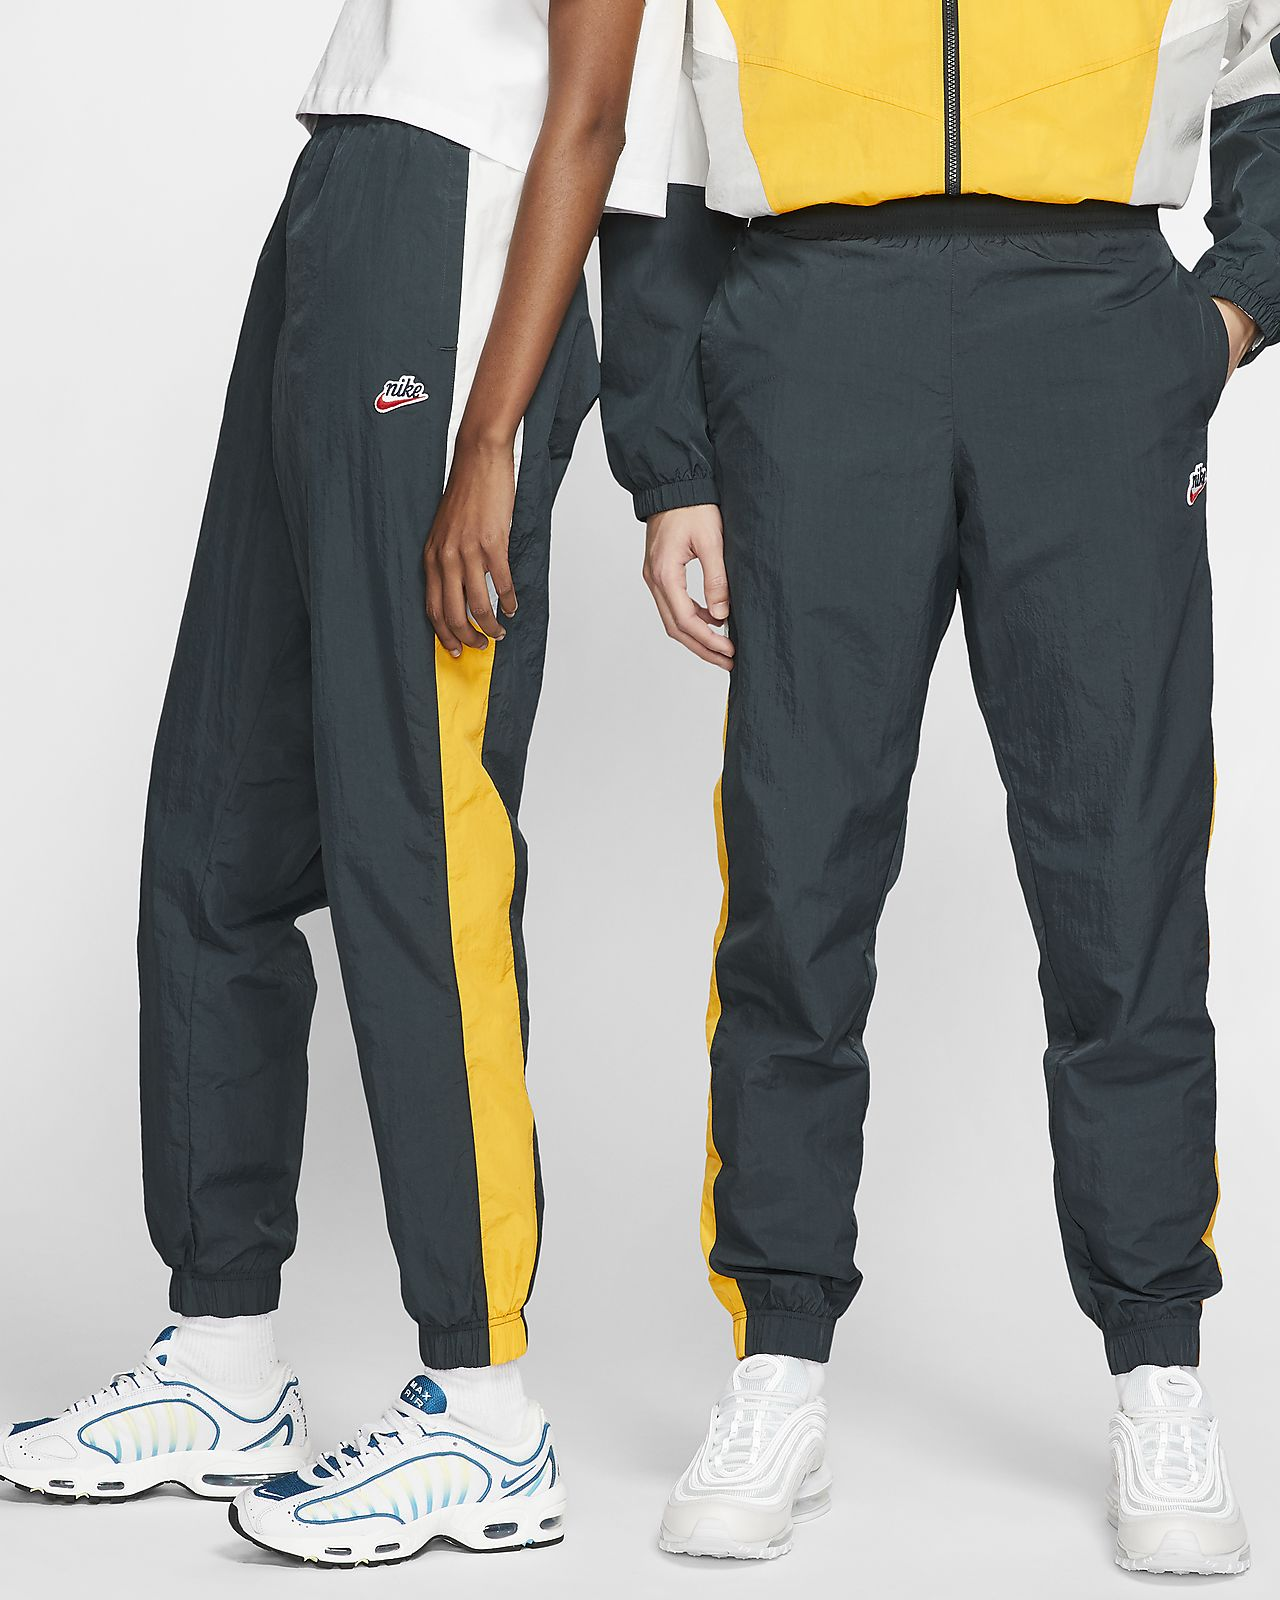 Best Nike Windrunner Pants Mens of 2020 Top Rated & Reviewed